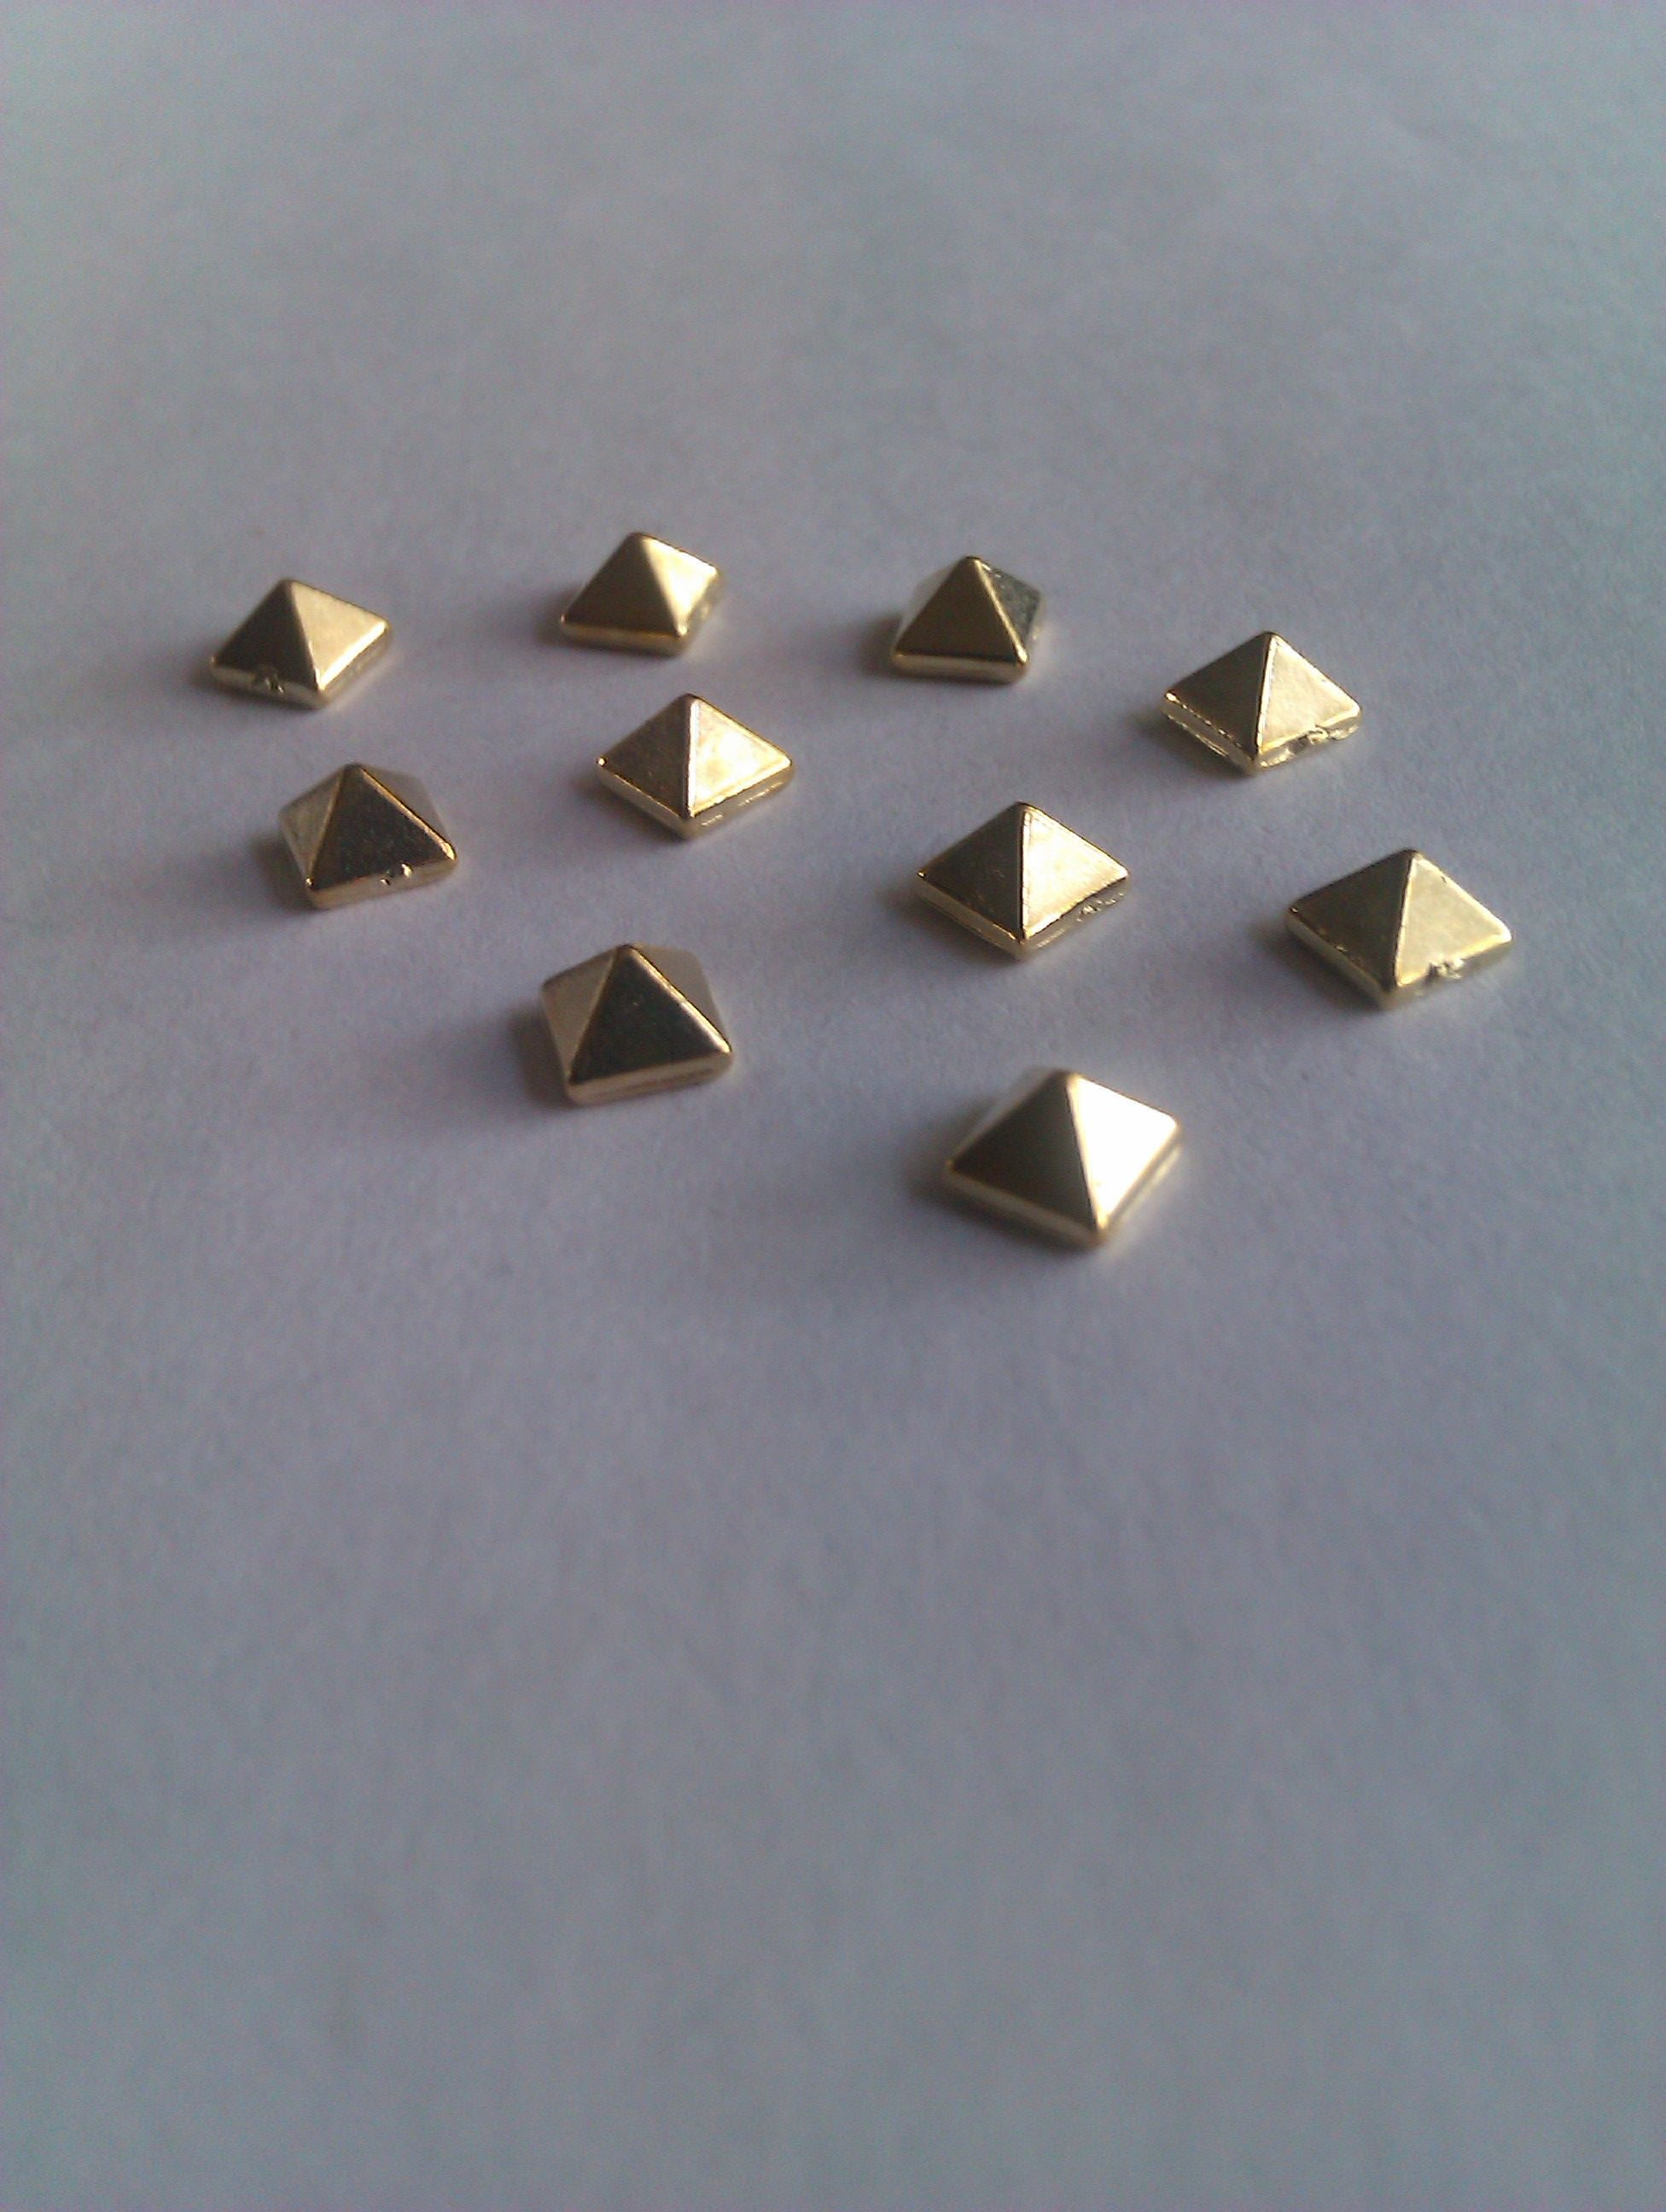 Pack of 10 gold pyramid spikes £1.00 http://www.charliesnailart.co.uk/pyramid-alloy-spikes-pk-of-10/